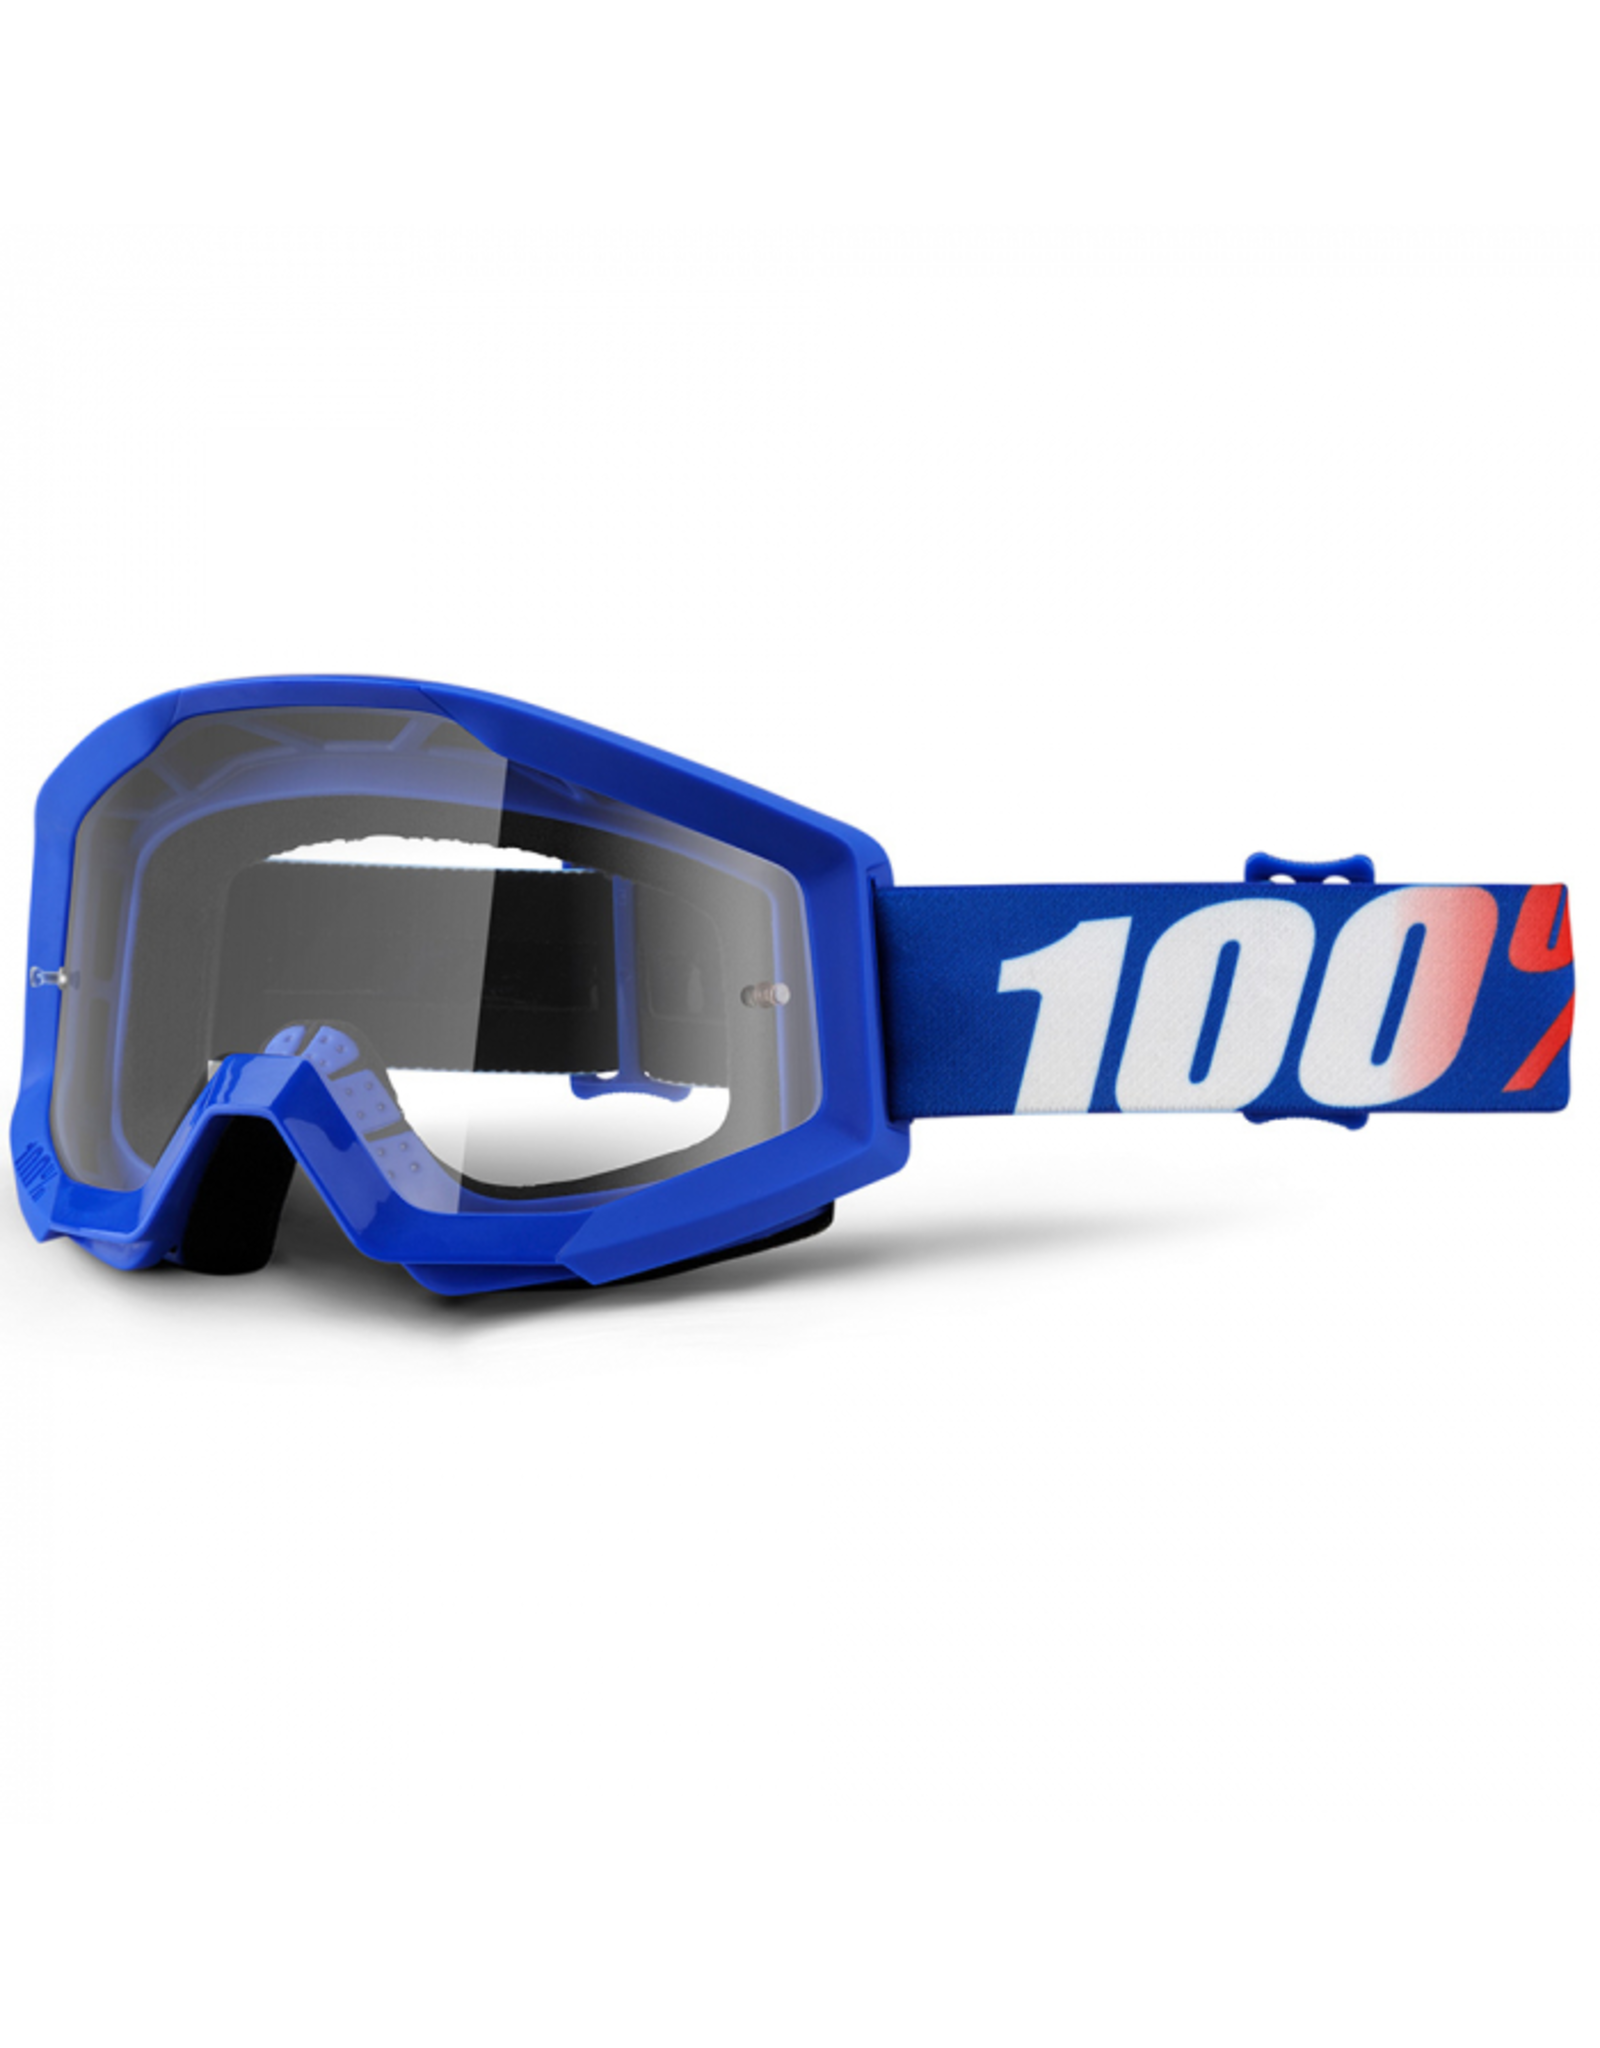 100% GOGGLES 100% STRATA CLEAR LENS NATION